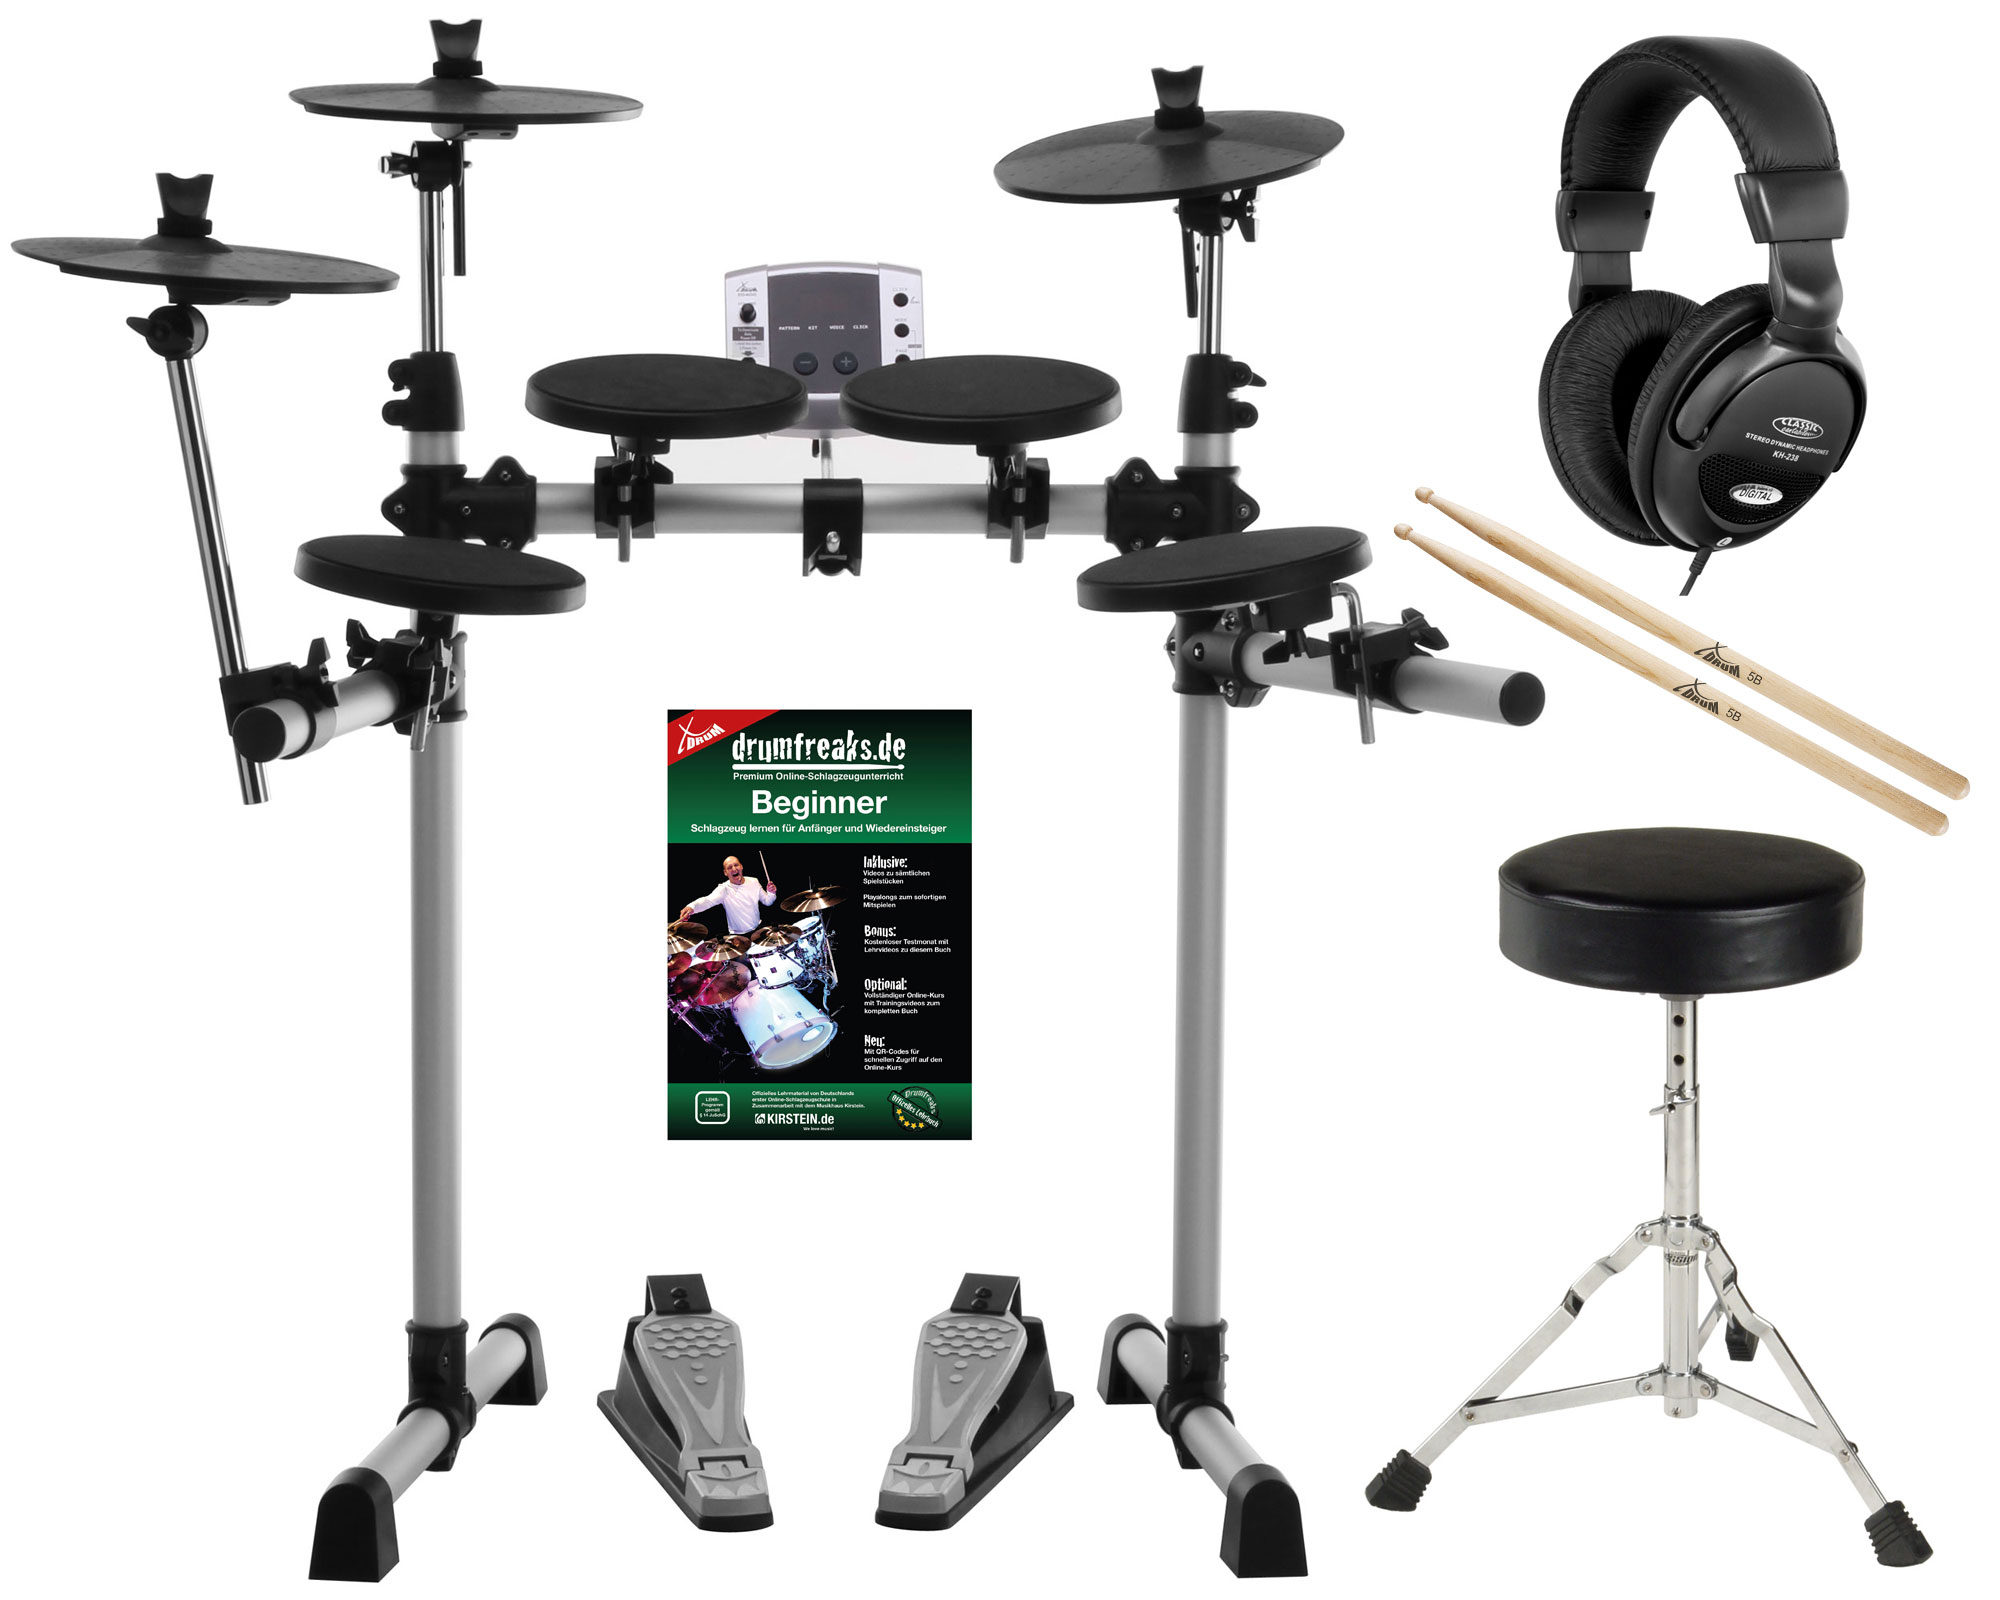 xdrum dd 400 electronic drum set complete with headphones drum stool and sticks. Black Bedroom Furniture Sets. Home Design Ideas